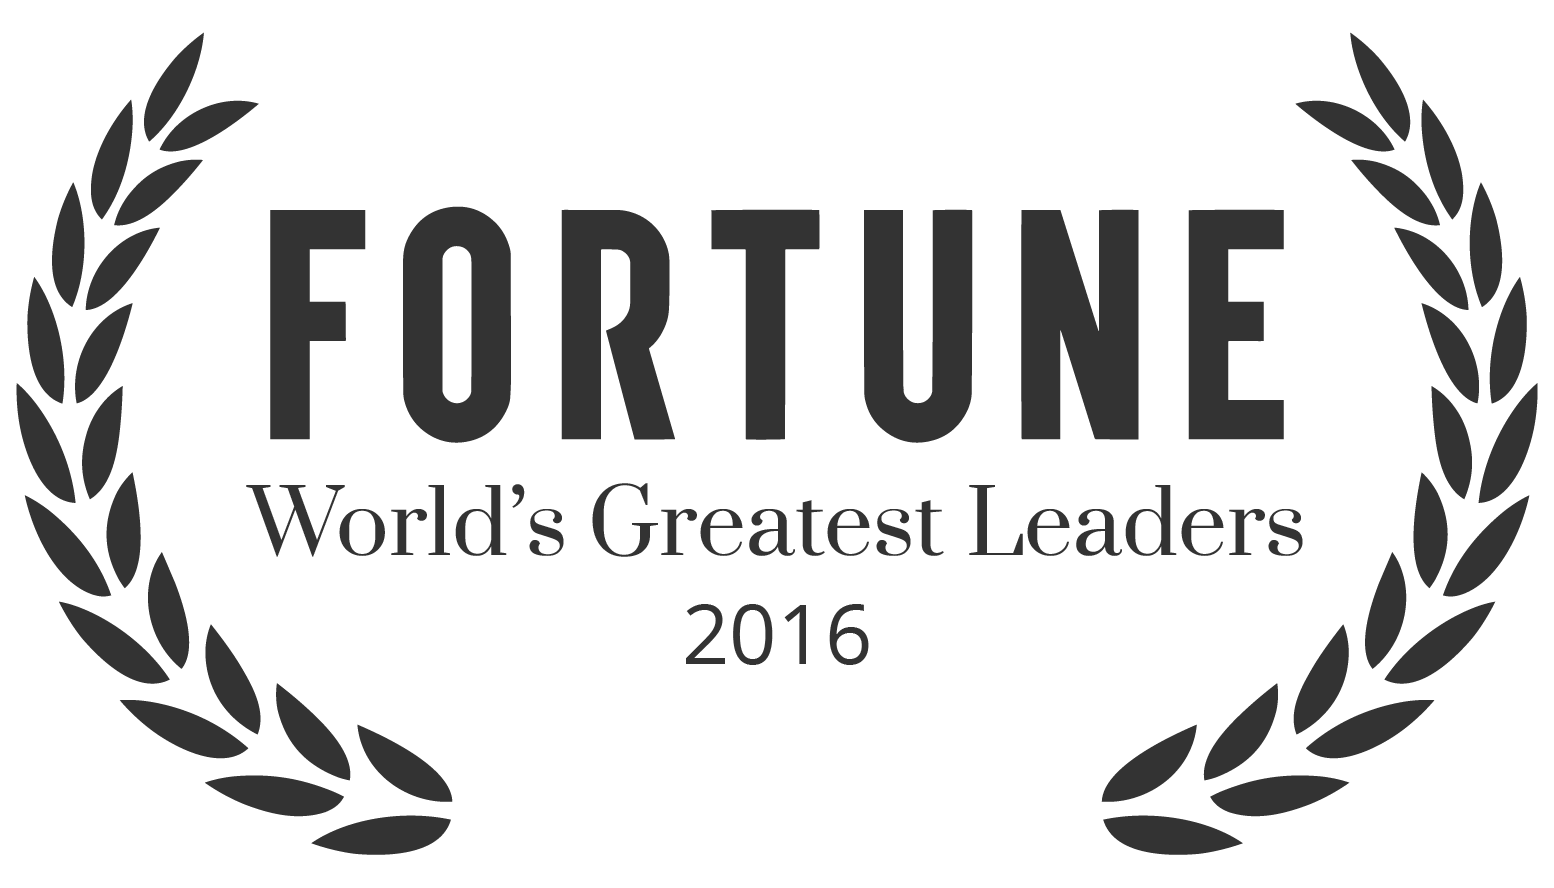 Fortune - World's Greatest Leaders